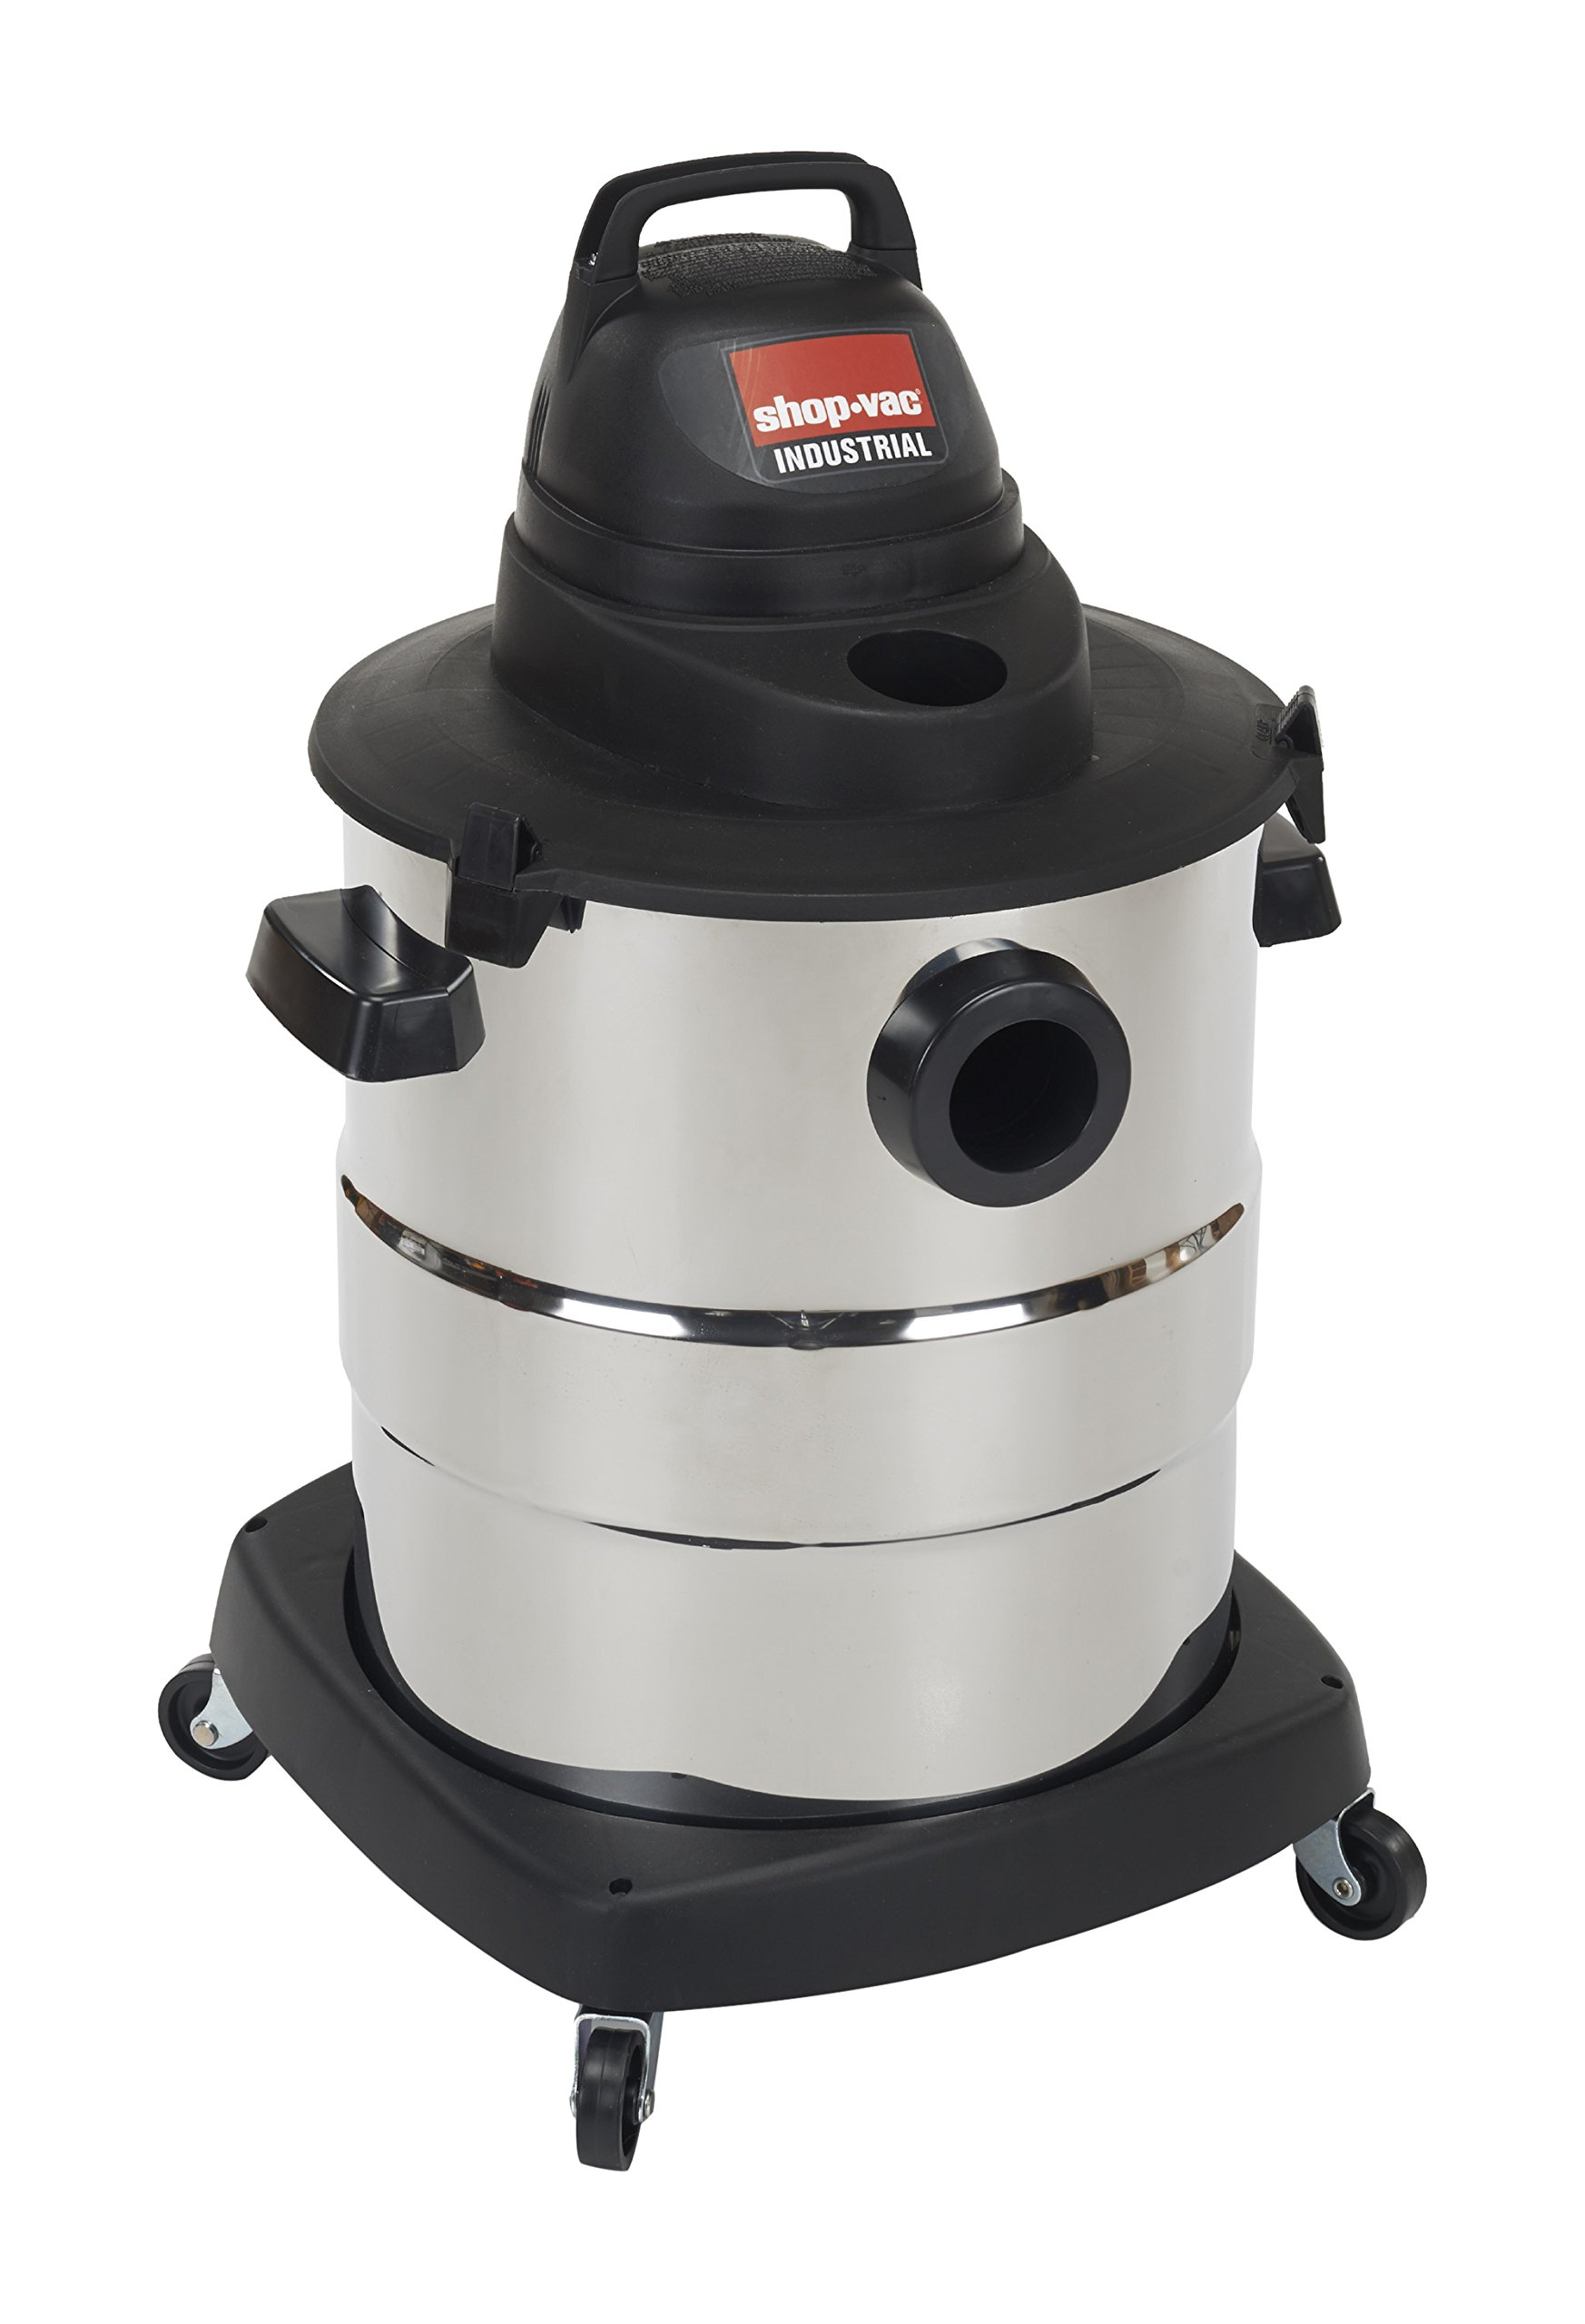 Shop-Vac 6000210 4.5 Peak HP Stainless Steel Wet Dry Vacuum, 10-Gallon by Shop-Vac